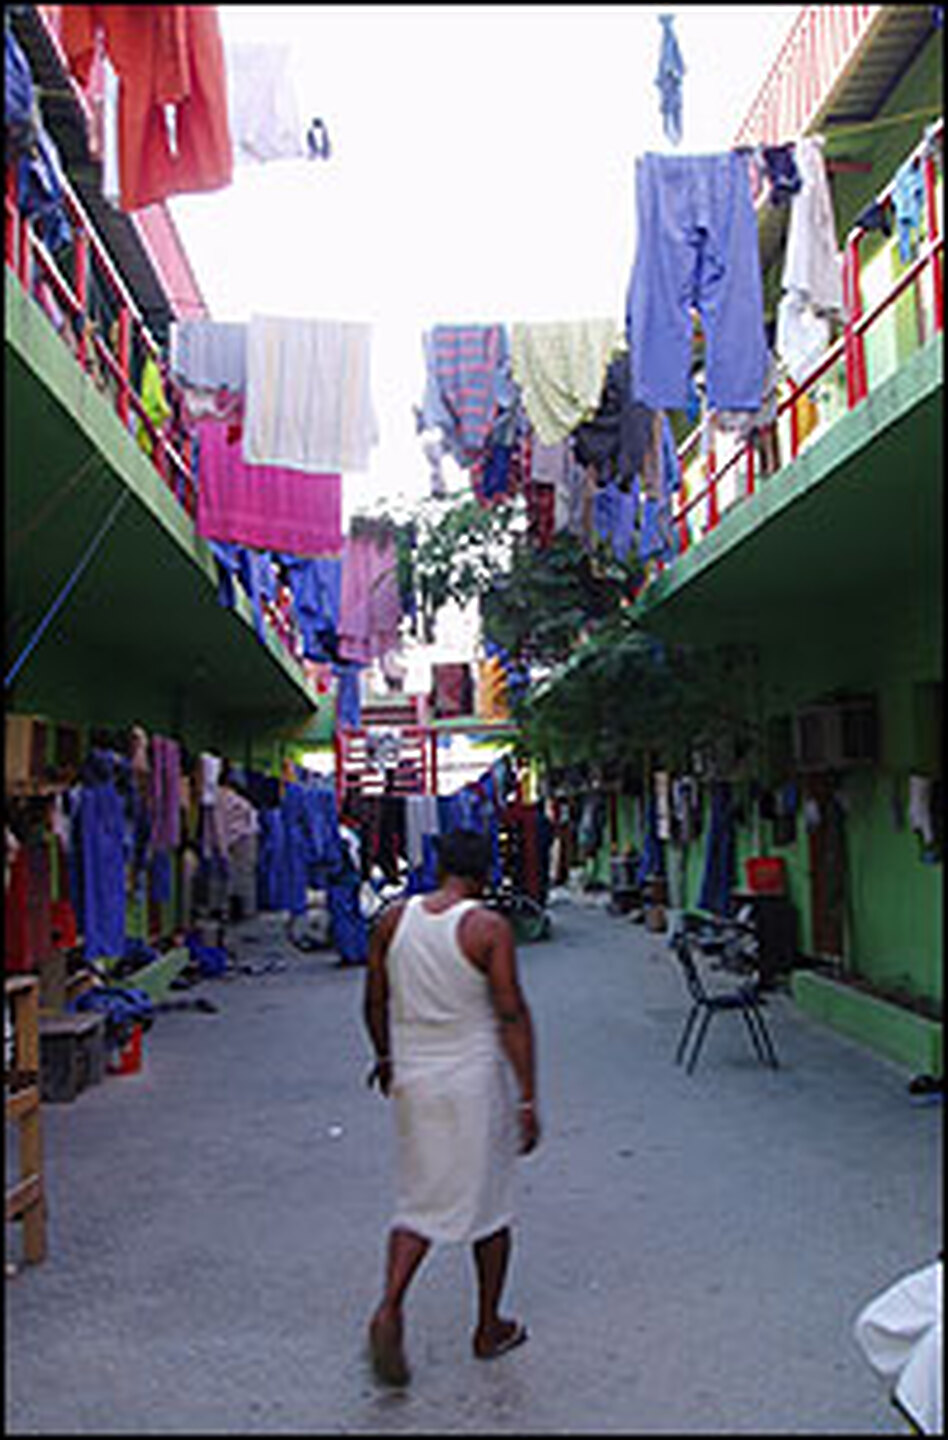 Blue uniforms hang to dry at one of the labor camps in Dubai, a city in the United Arab Emirates. Because of their inability to form labor unions, foreign workers who make up 95 percent of the country's labor pool are vulnerable to exploitation, according to Human Rights Watch.